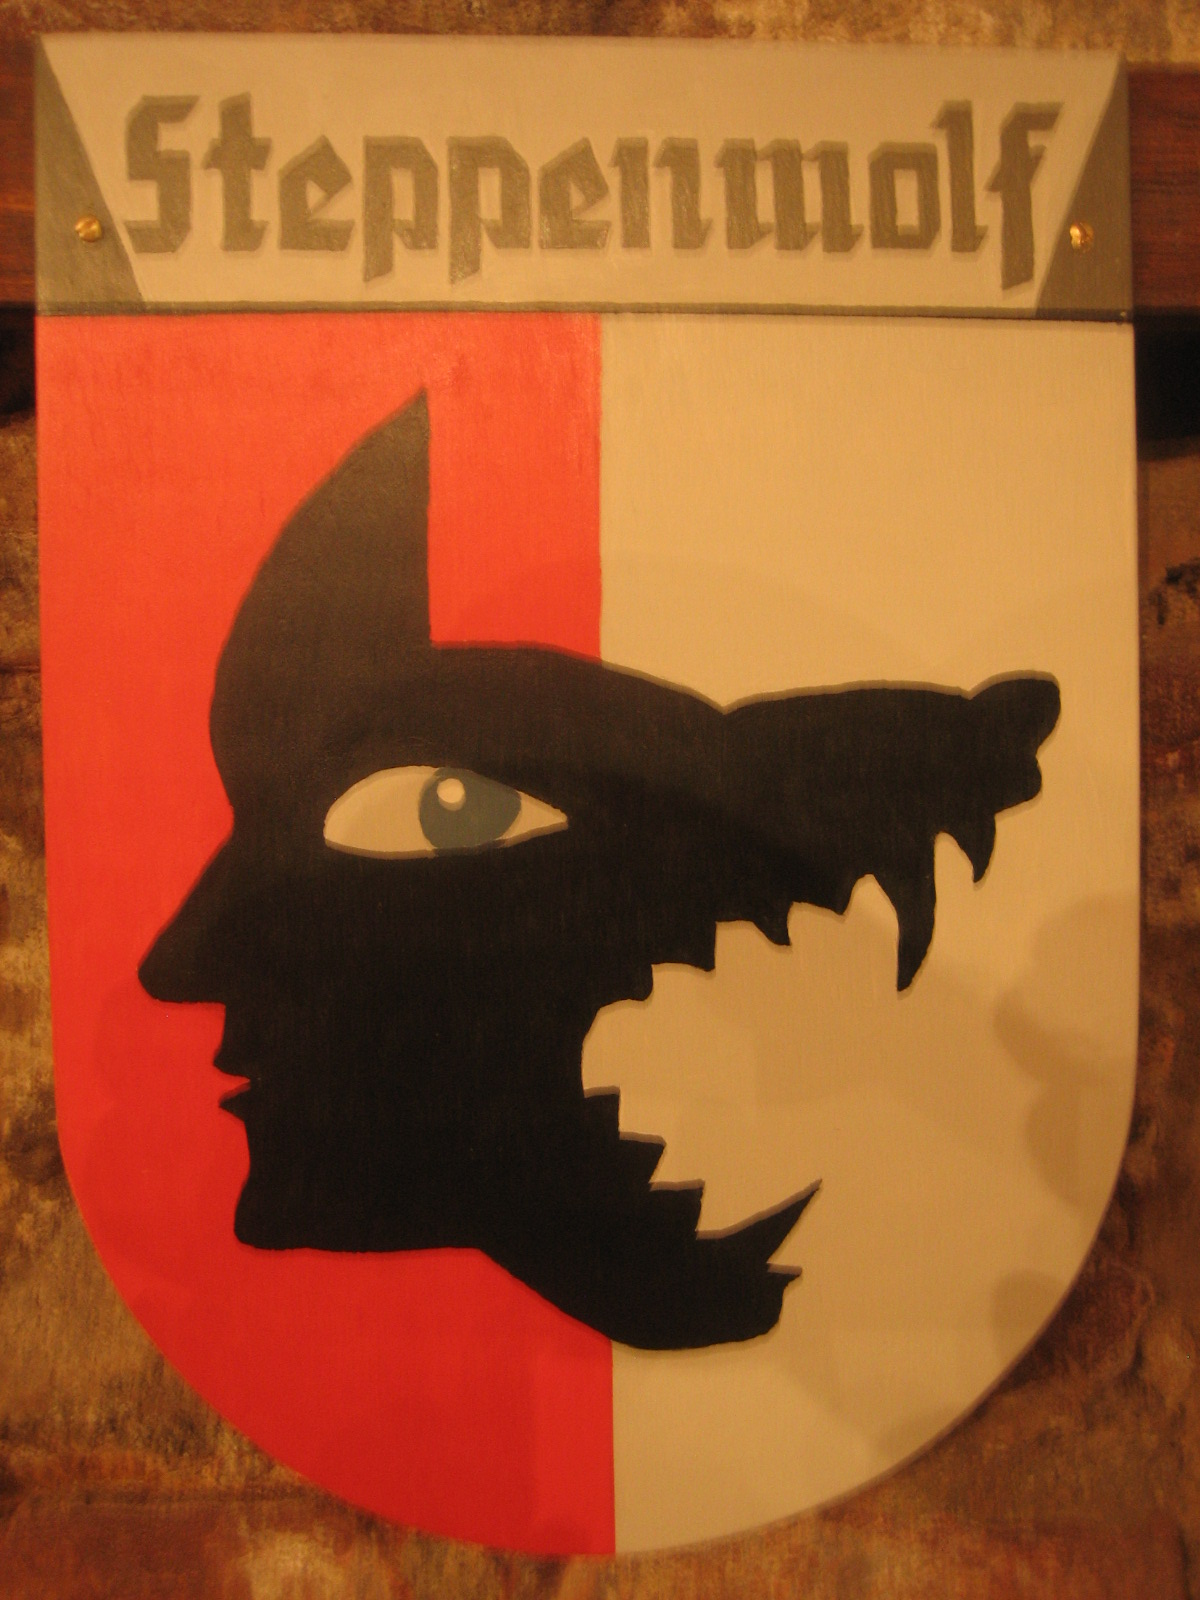 Wappen Rt Steppenwolf